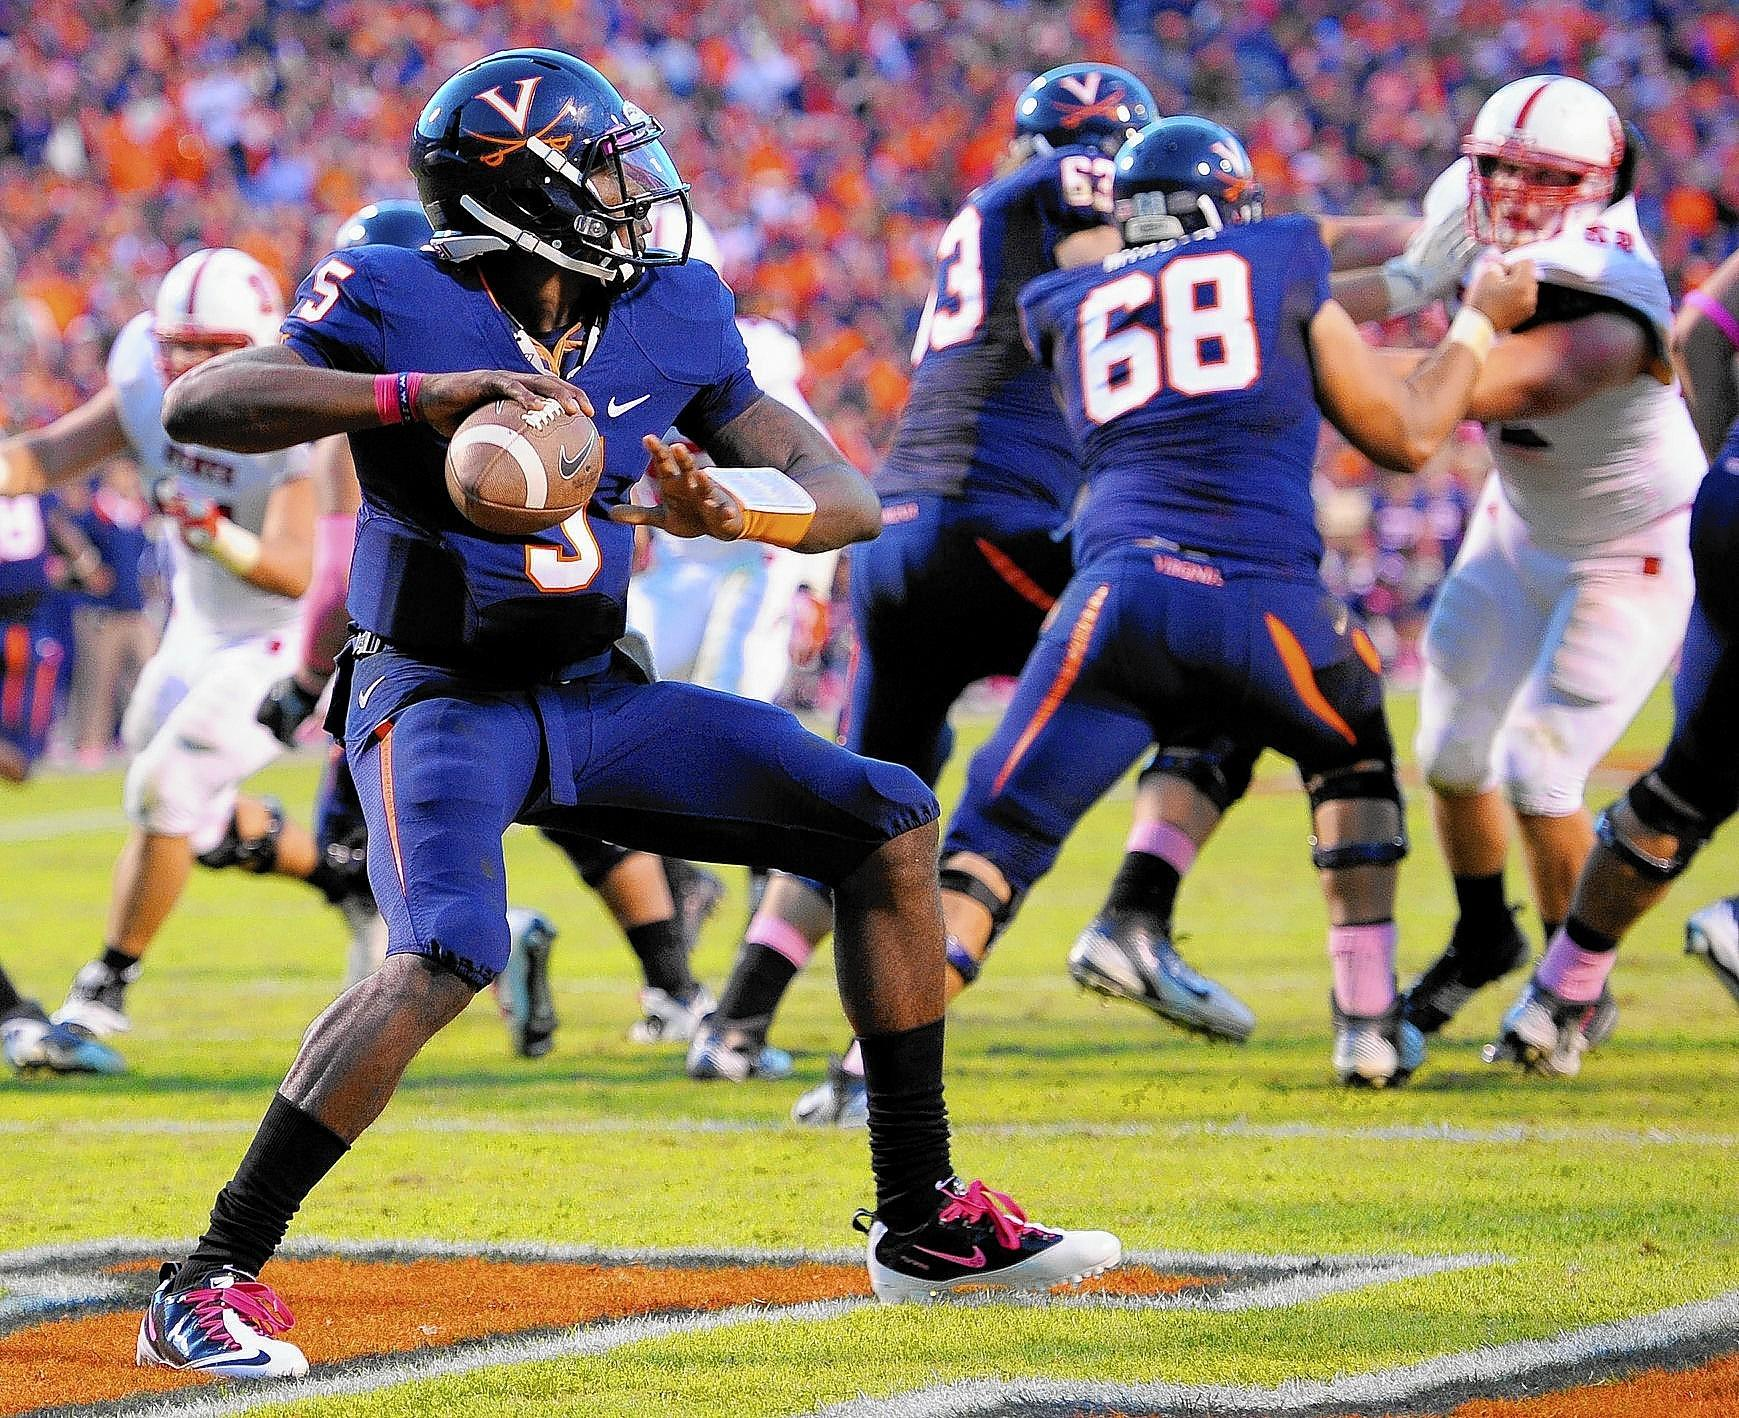 David Watford threw an ACC-high 15 interceptions last season as the starting quarterback for Virginia, which stumbled to a 2-10 record. Illustrates FBC-VIRGINIA (category s), by Mark Giannotto © 2014, The Washington Post. Moved Thursday, Aug. 7, 2014. (MUST CREDIT: Washington Post photo by John McDonnell) ** Usable by BS, CT, DP, FL, HC, MC, OS **